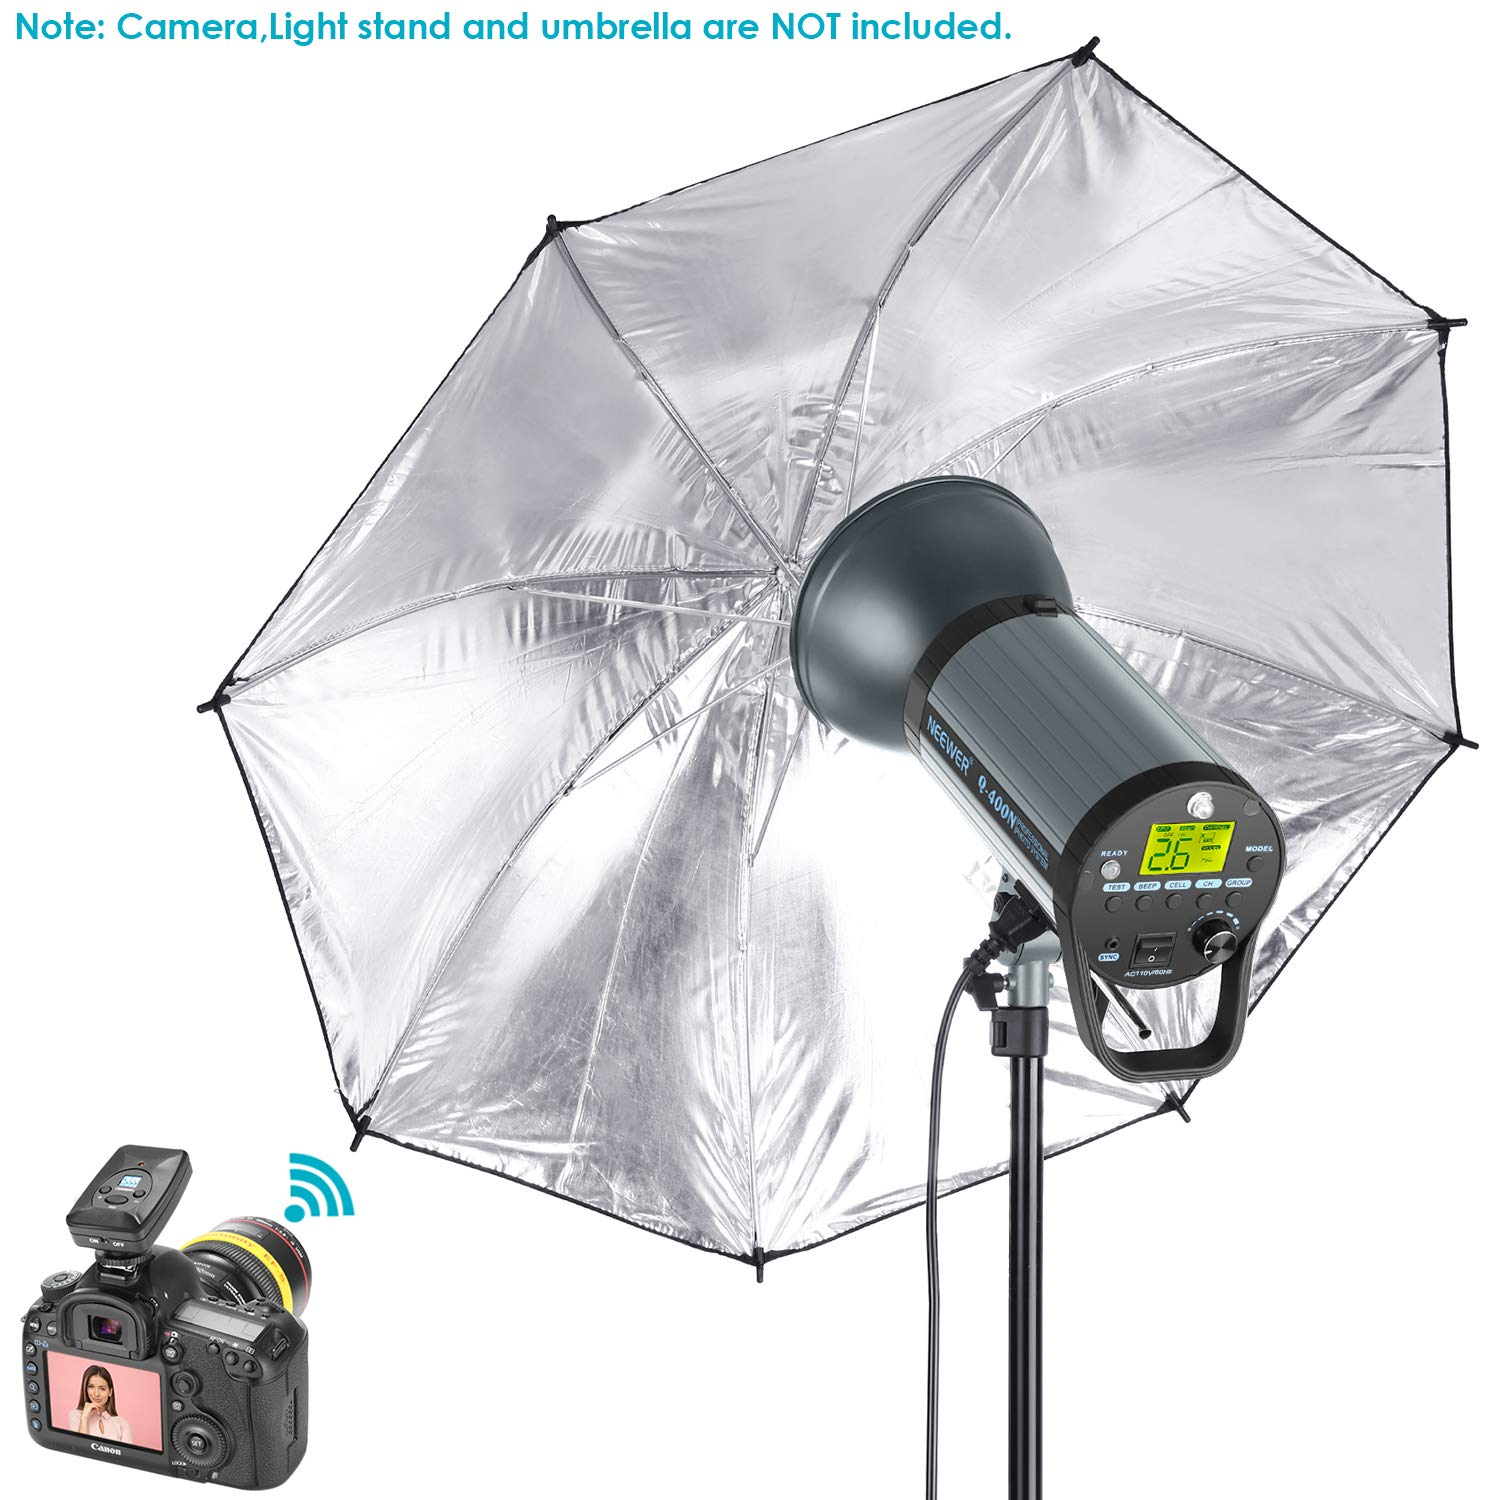 Neewer 400W GN65 Studio Flash Strobe Light Monolight with 2.4G Wireless Trigger and Modeling Lamp, Recycle in 0.01-0.5 Sec, Bowens Mount for Indoor Studio Portrait Photography(Q400N) by Neewer (Image #5)